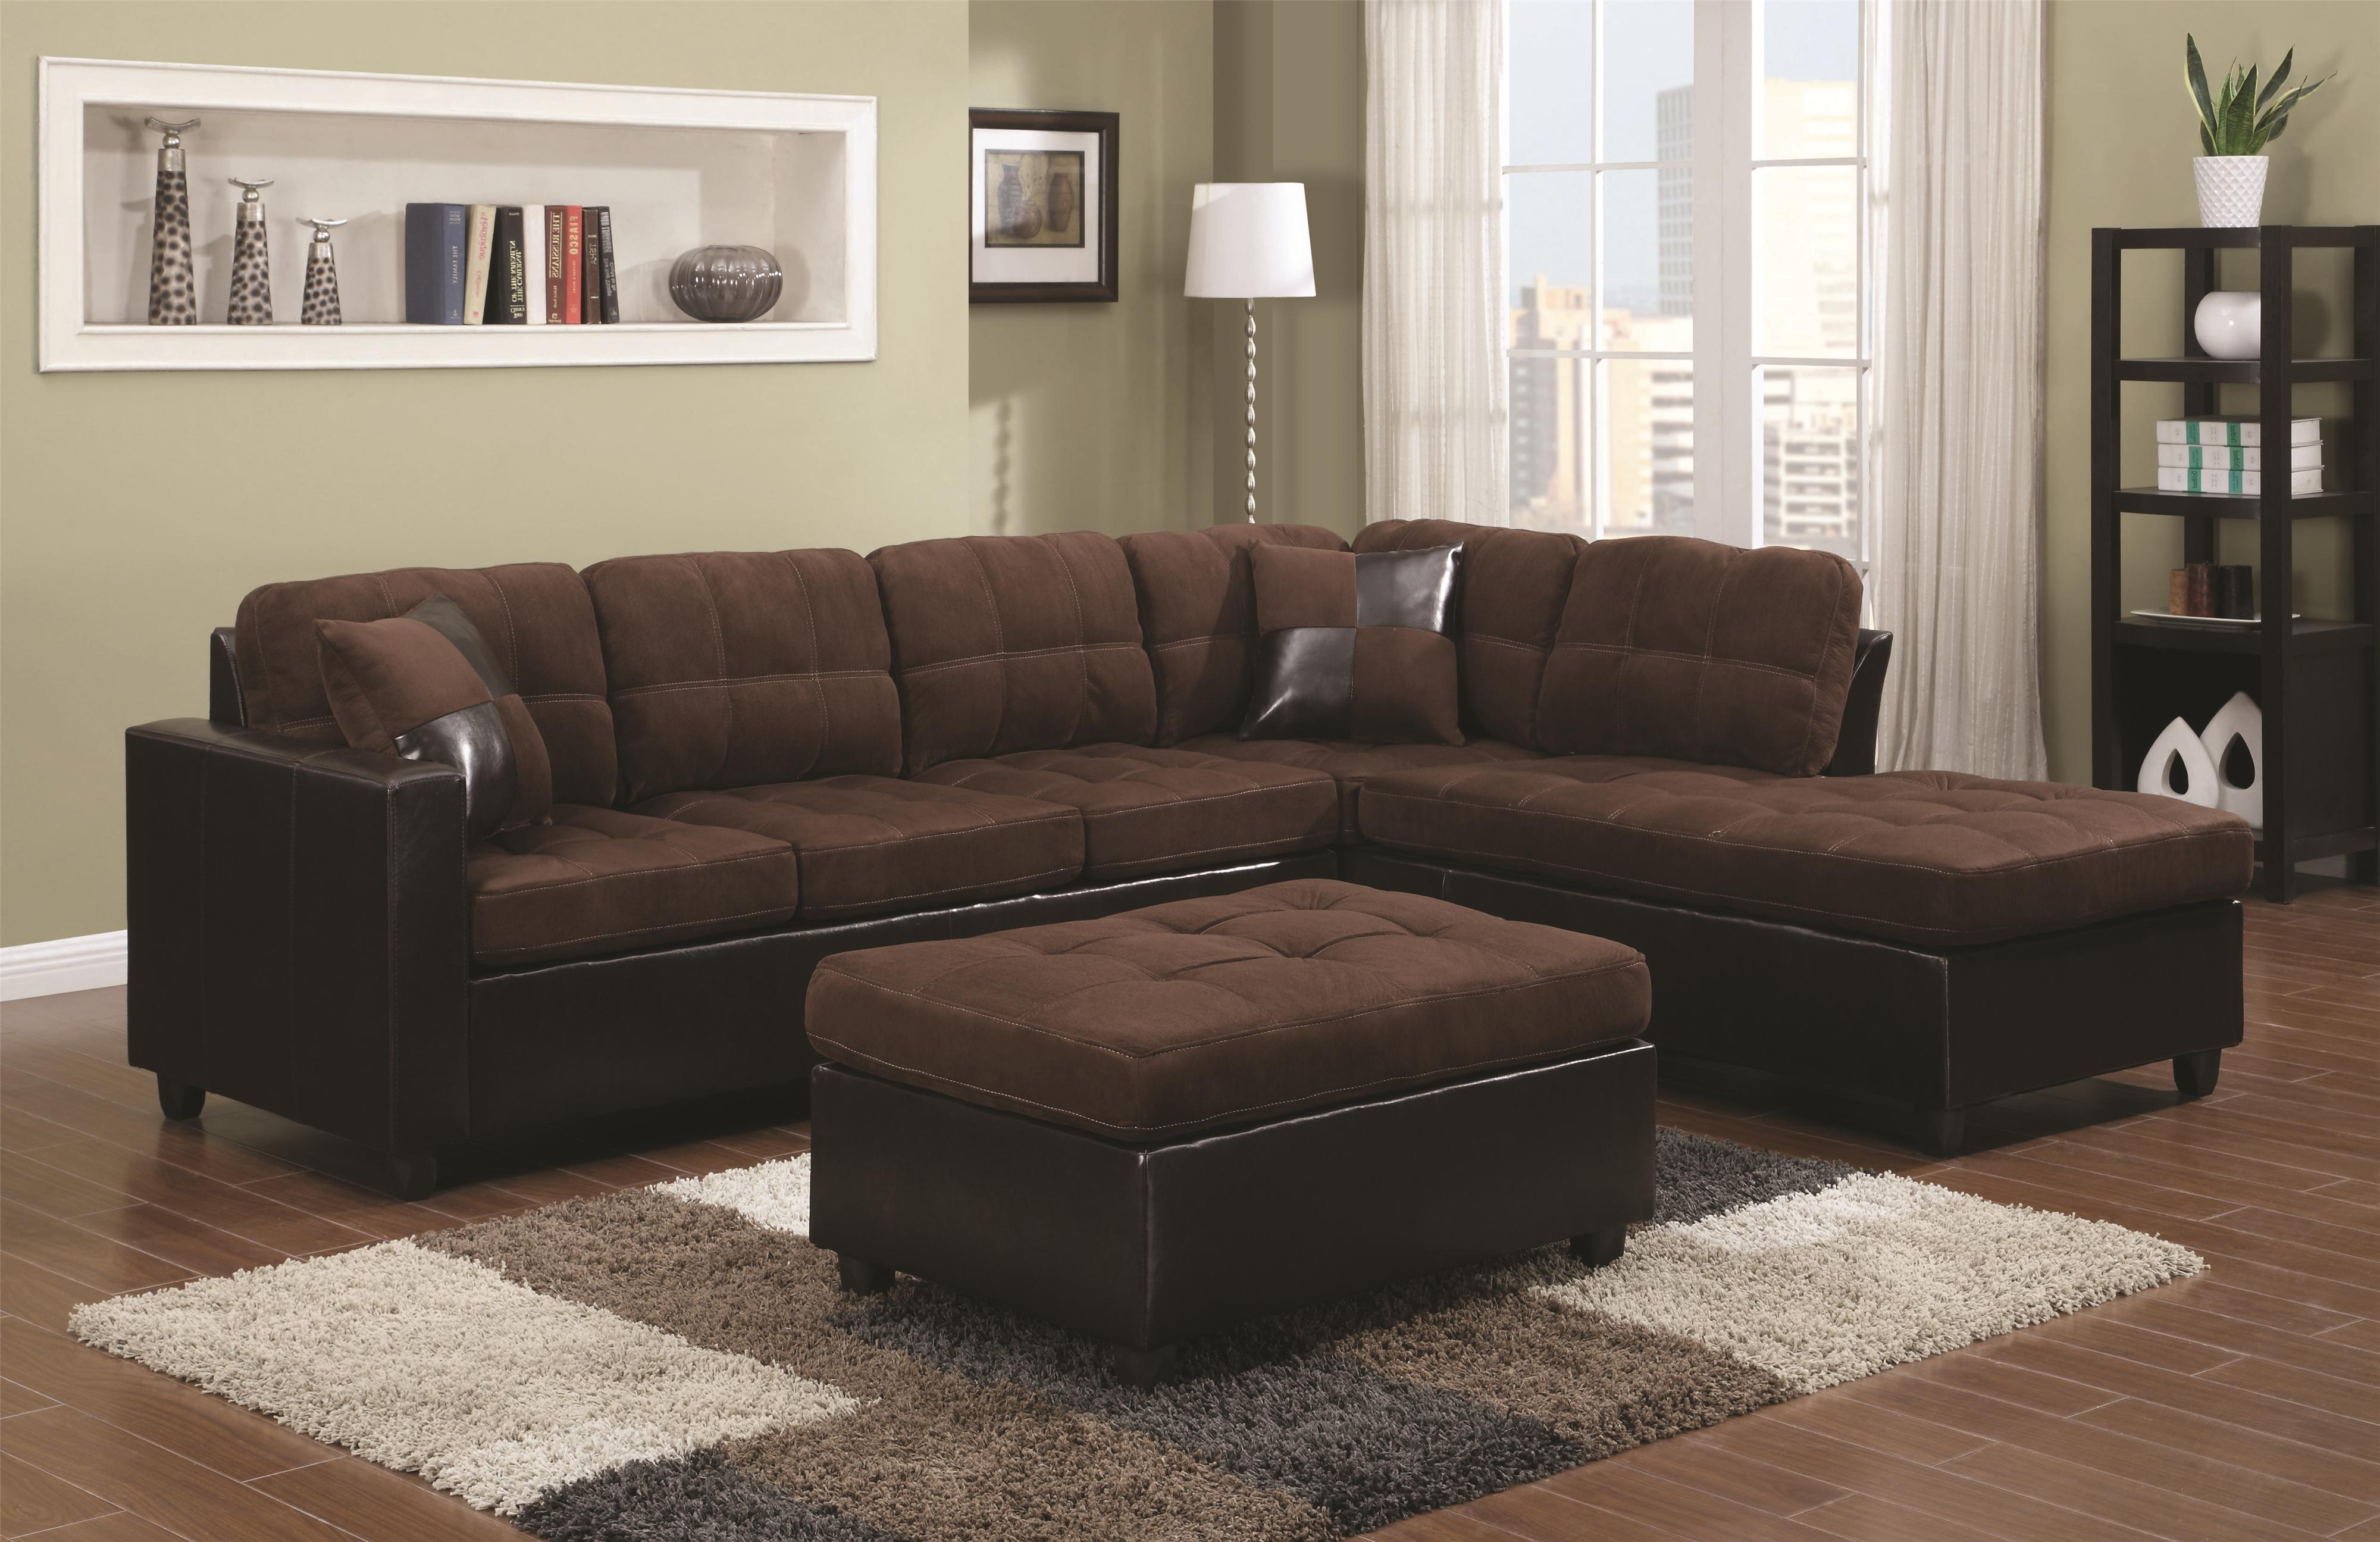 Coaster Mallory Stationary Living Room Group Value City Furniture Stationary Living Room Groups